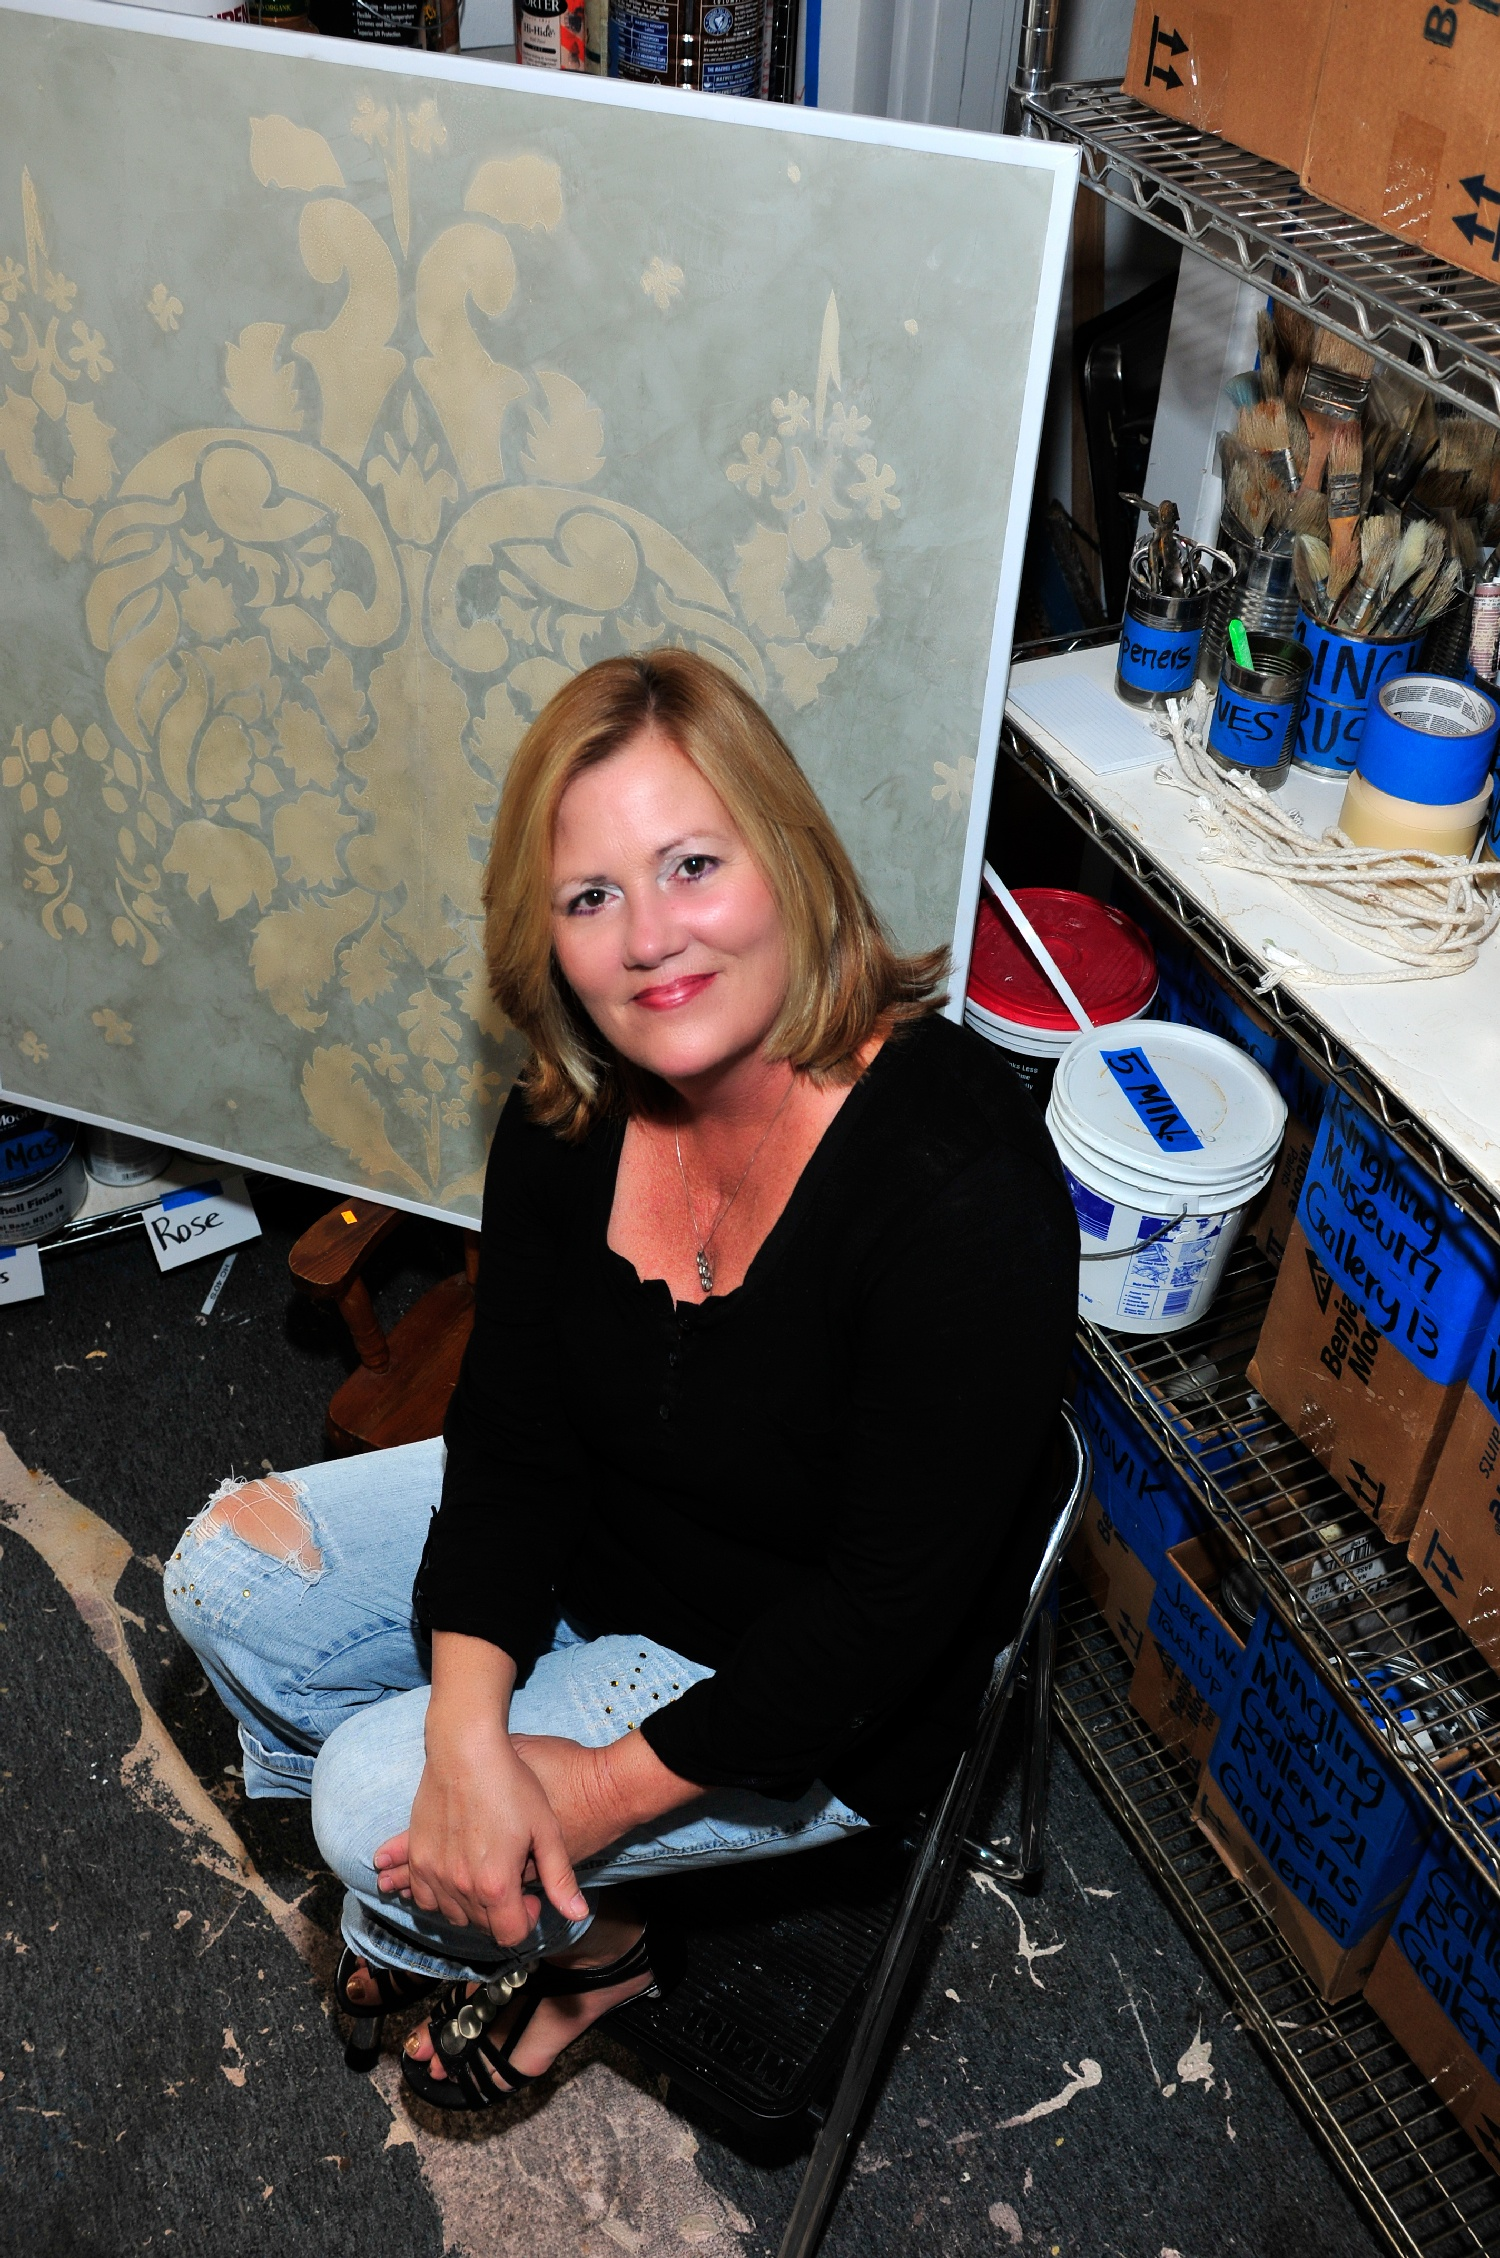 Alene Pettus in the studio for Architectural Painting and Renovation.